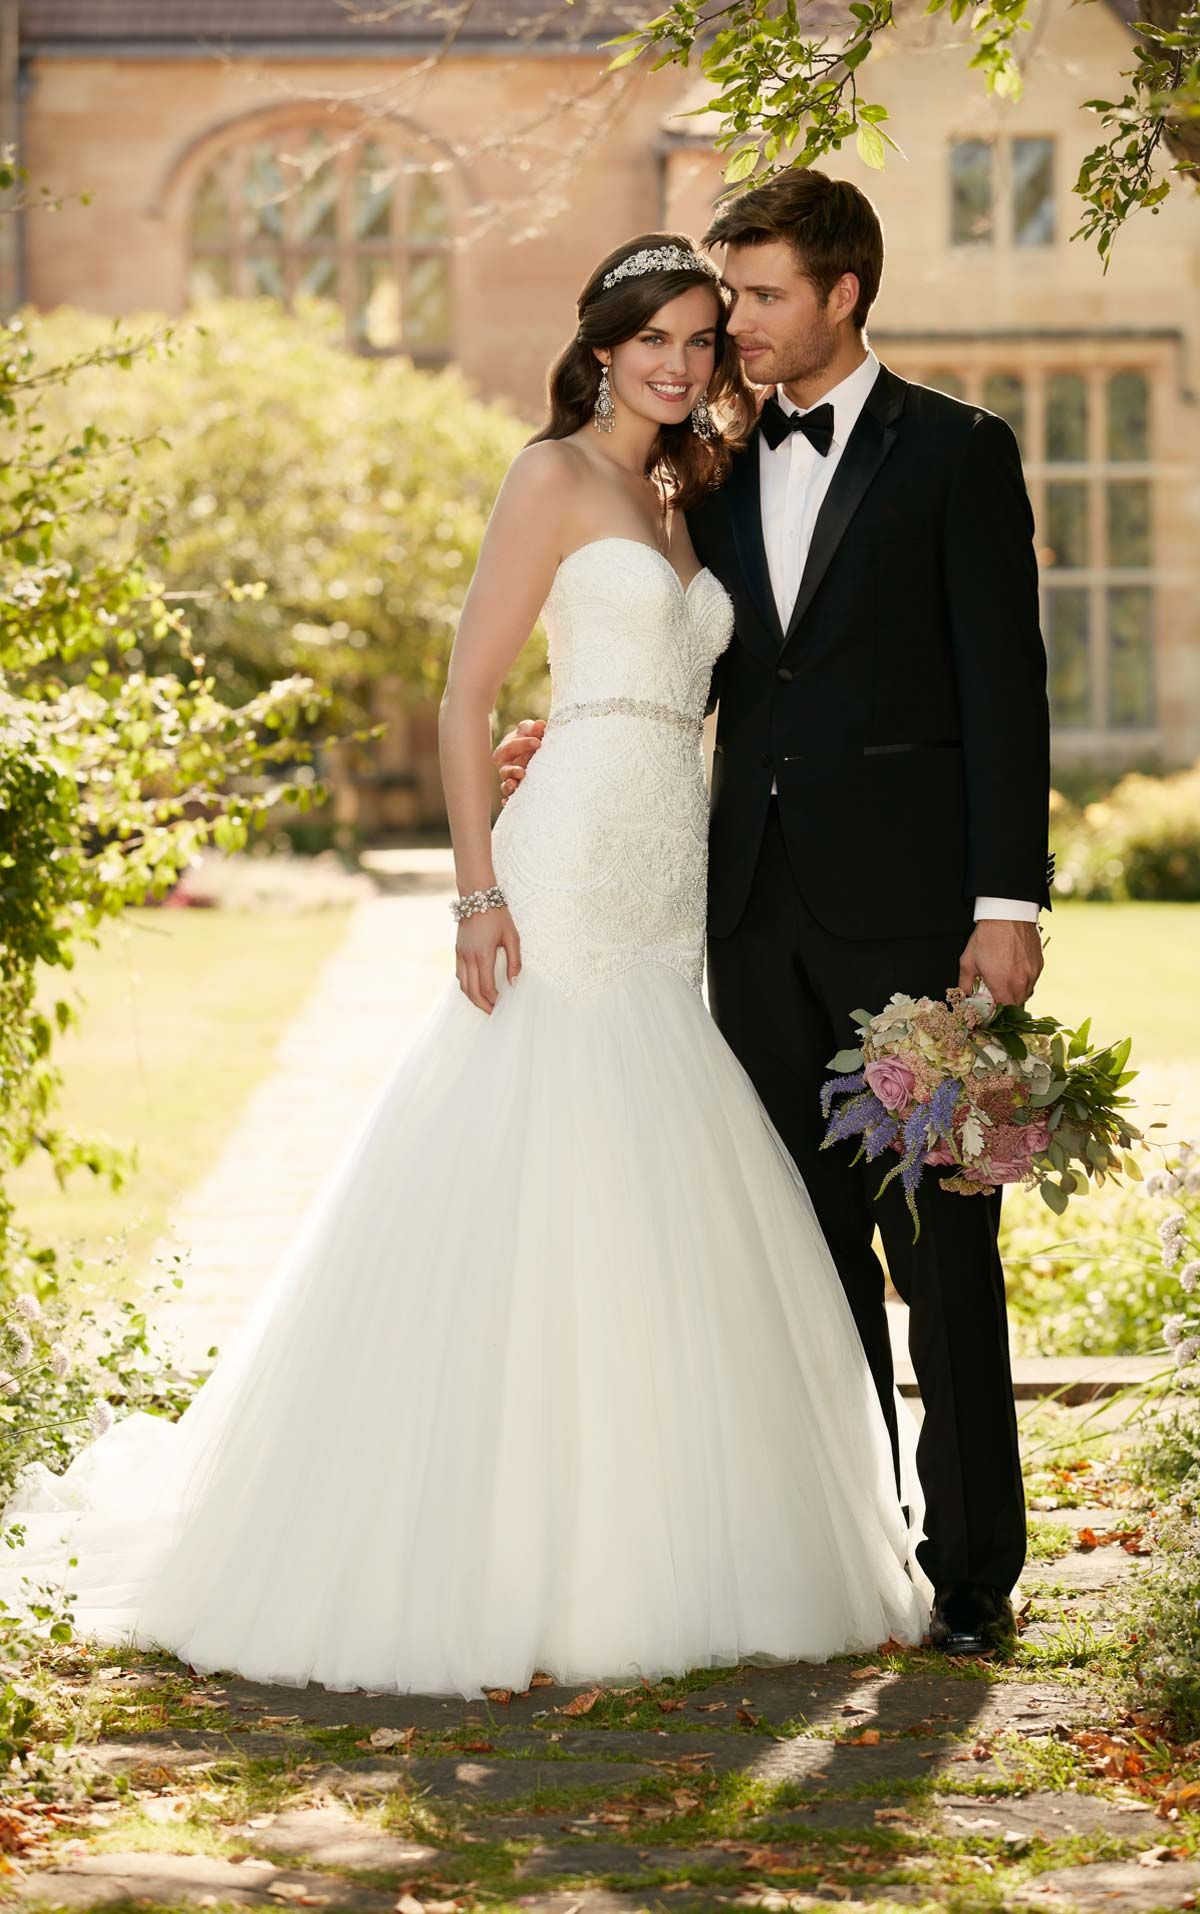 Curve-hugging linear lace on a plunging bodice make this stunning ...